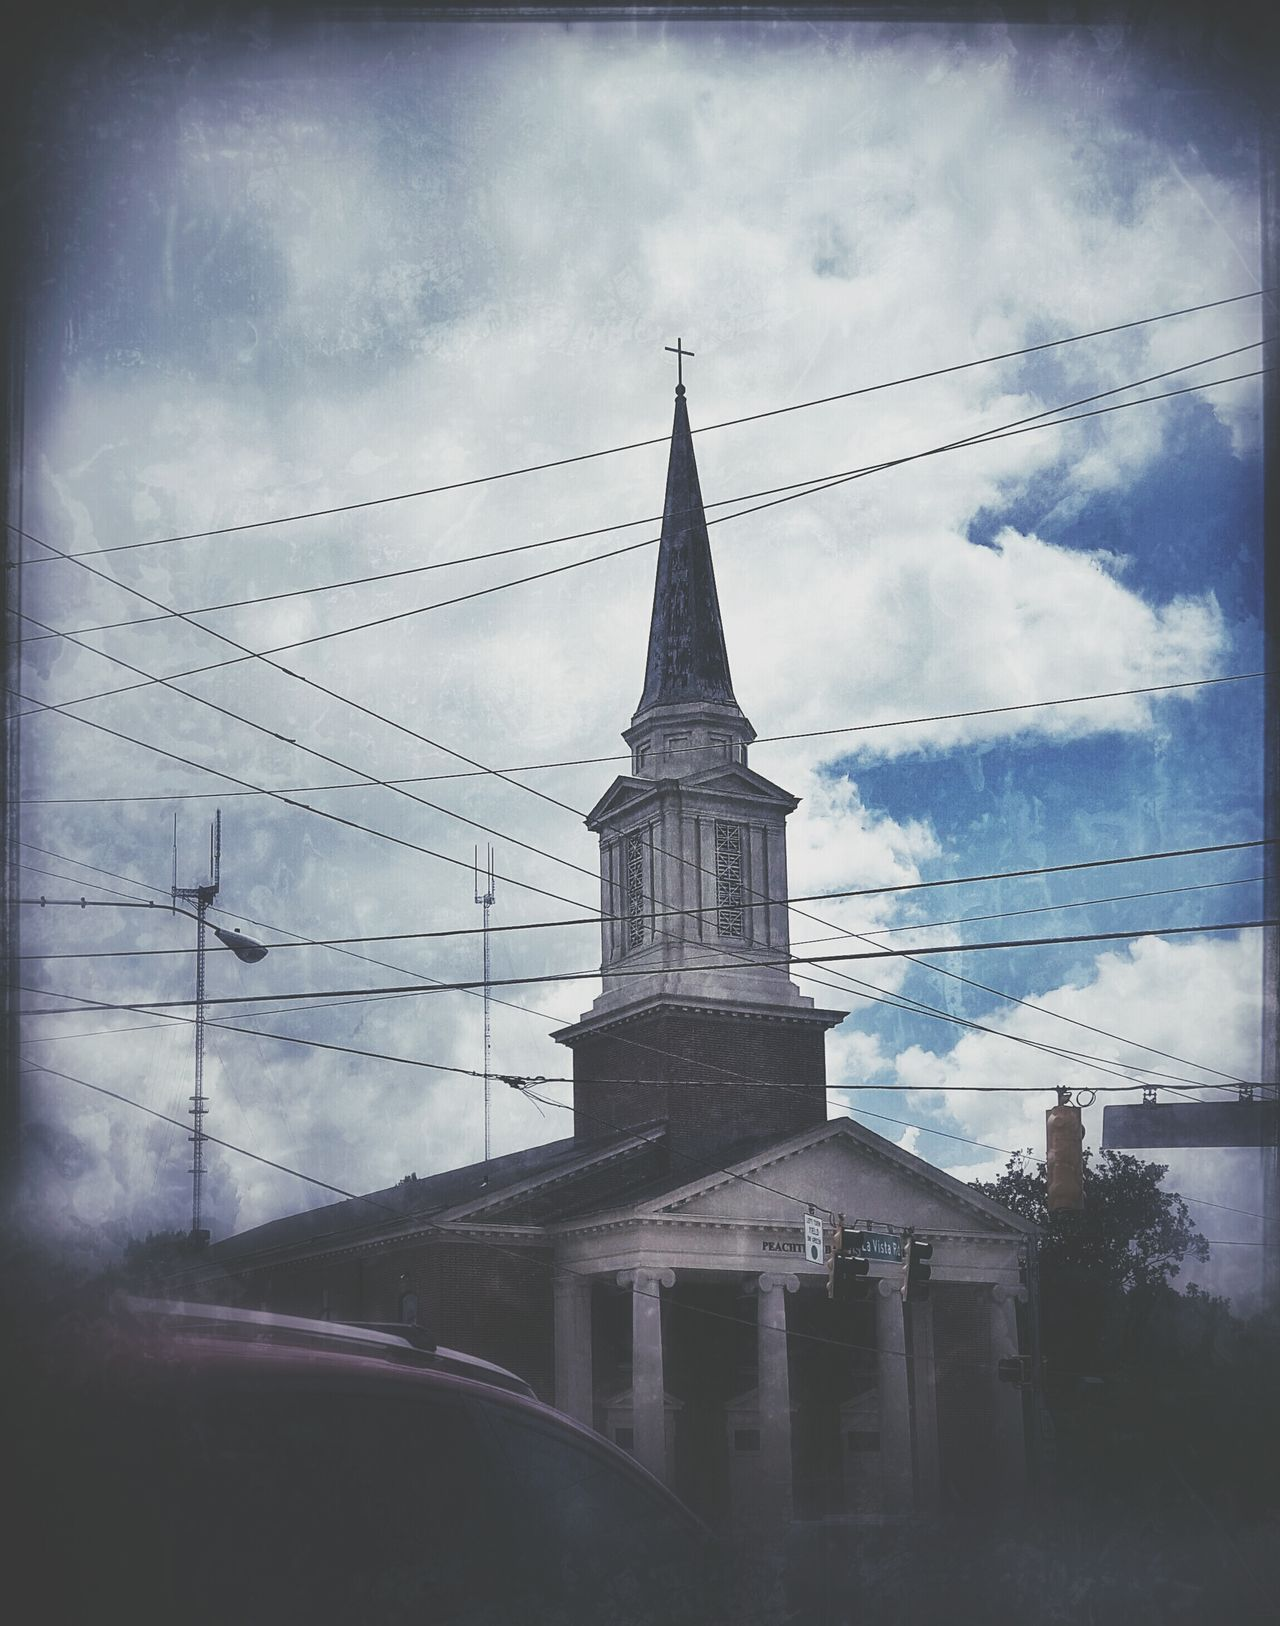 Church Atlanta Georgia Snapseed Summer Sky And Clouds Visual Pollution Wires And Cables Wires In The Sky